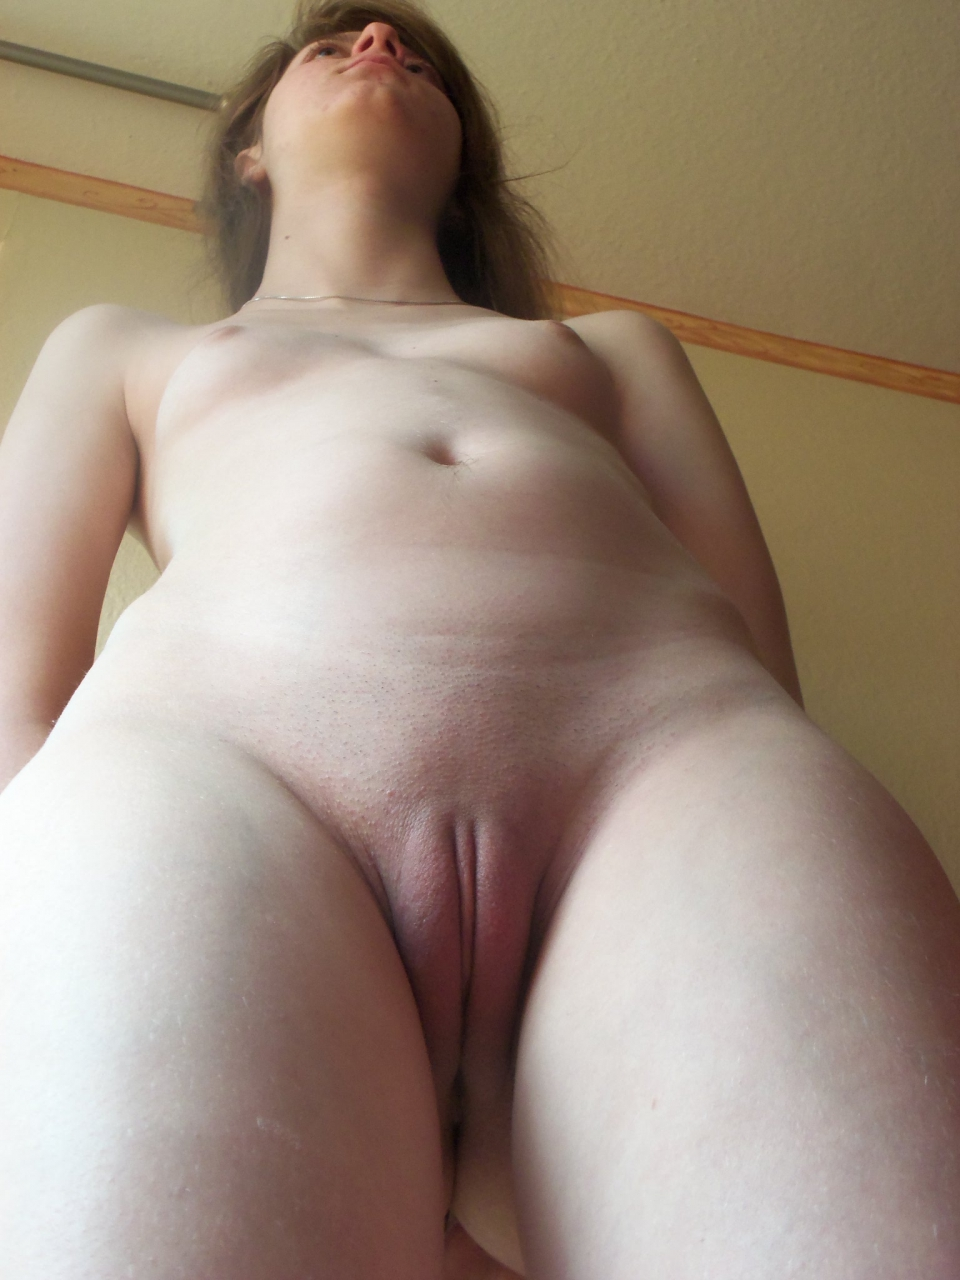 Get German Amateur Couple And Girl Porno For Free